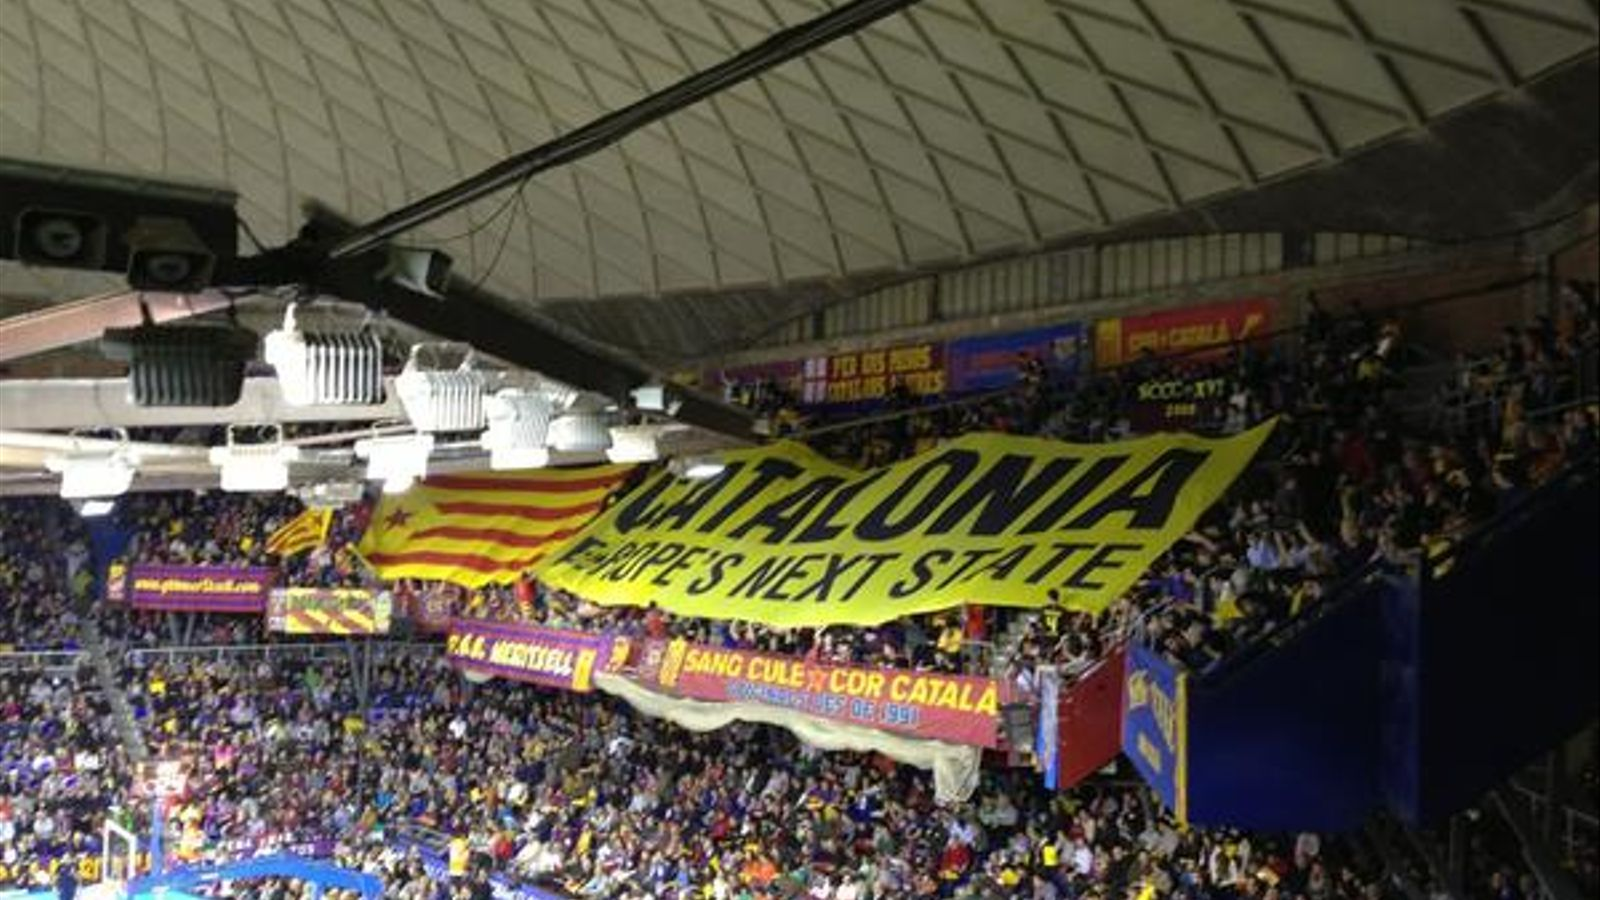 El palau blaugrana un clam a favor de la independ ncia for Puerta 0 palau blaugrana